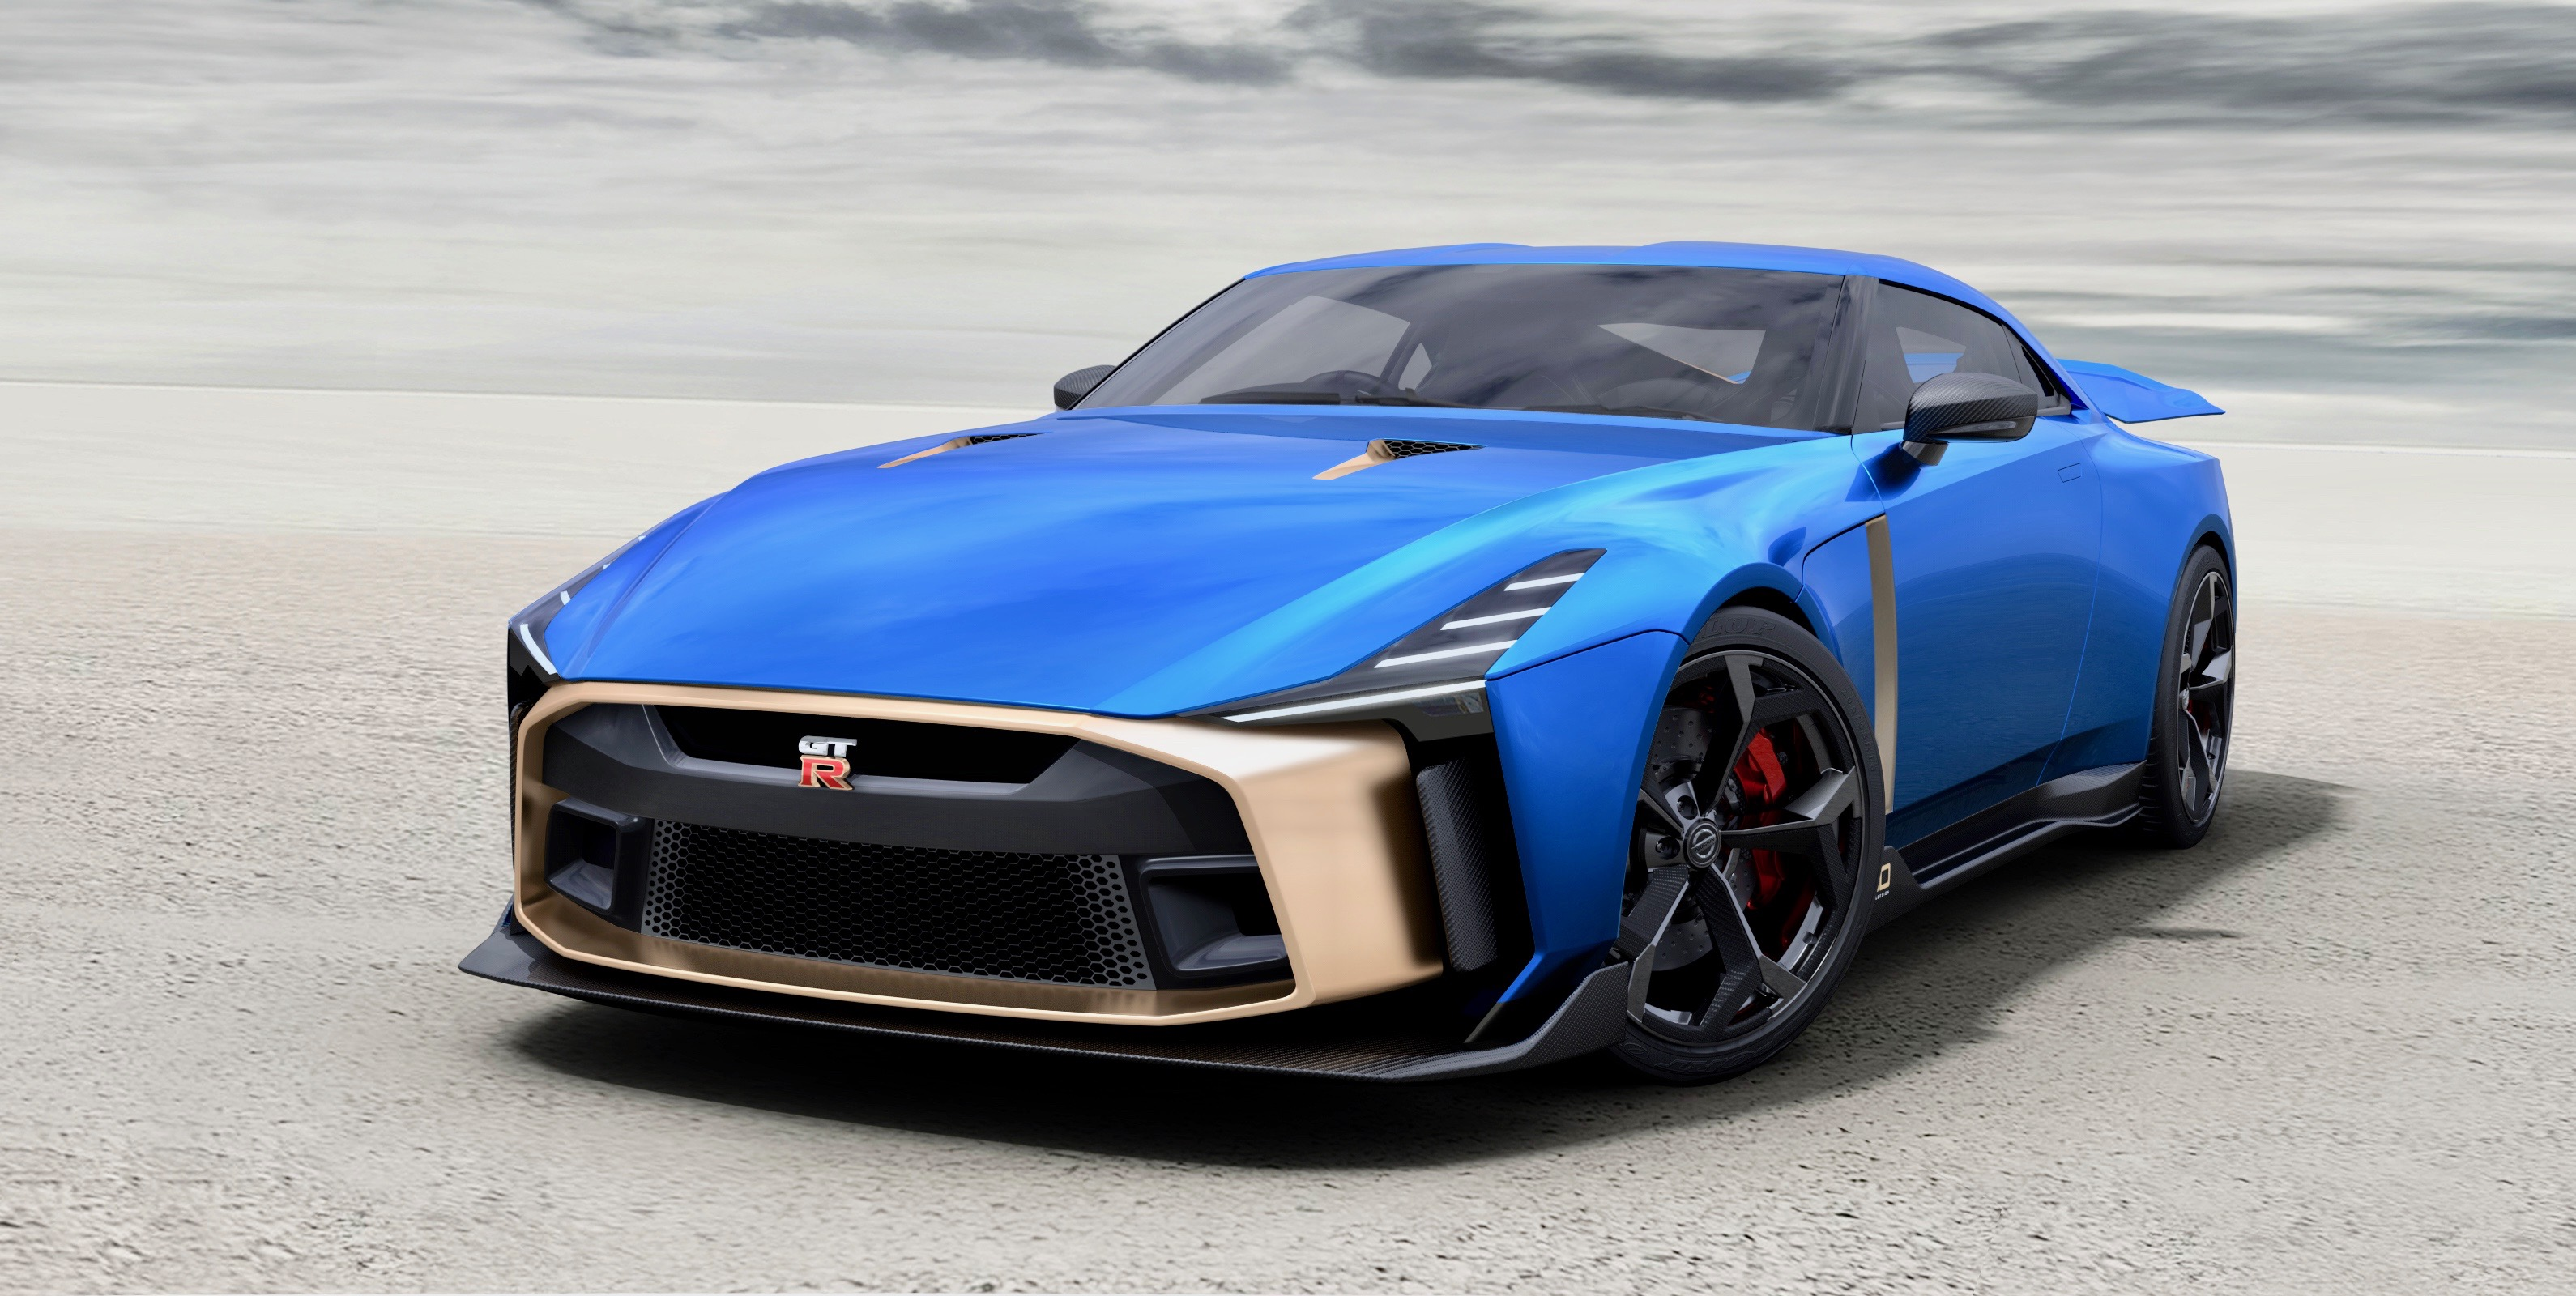 Here's what the $1.1M Nissan GT-R50 by Italdesign looks like